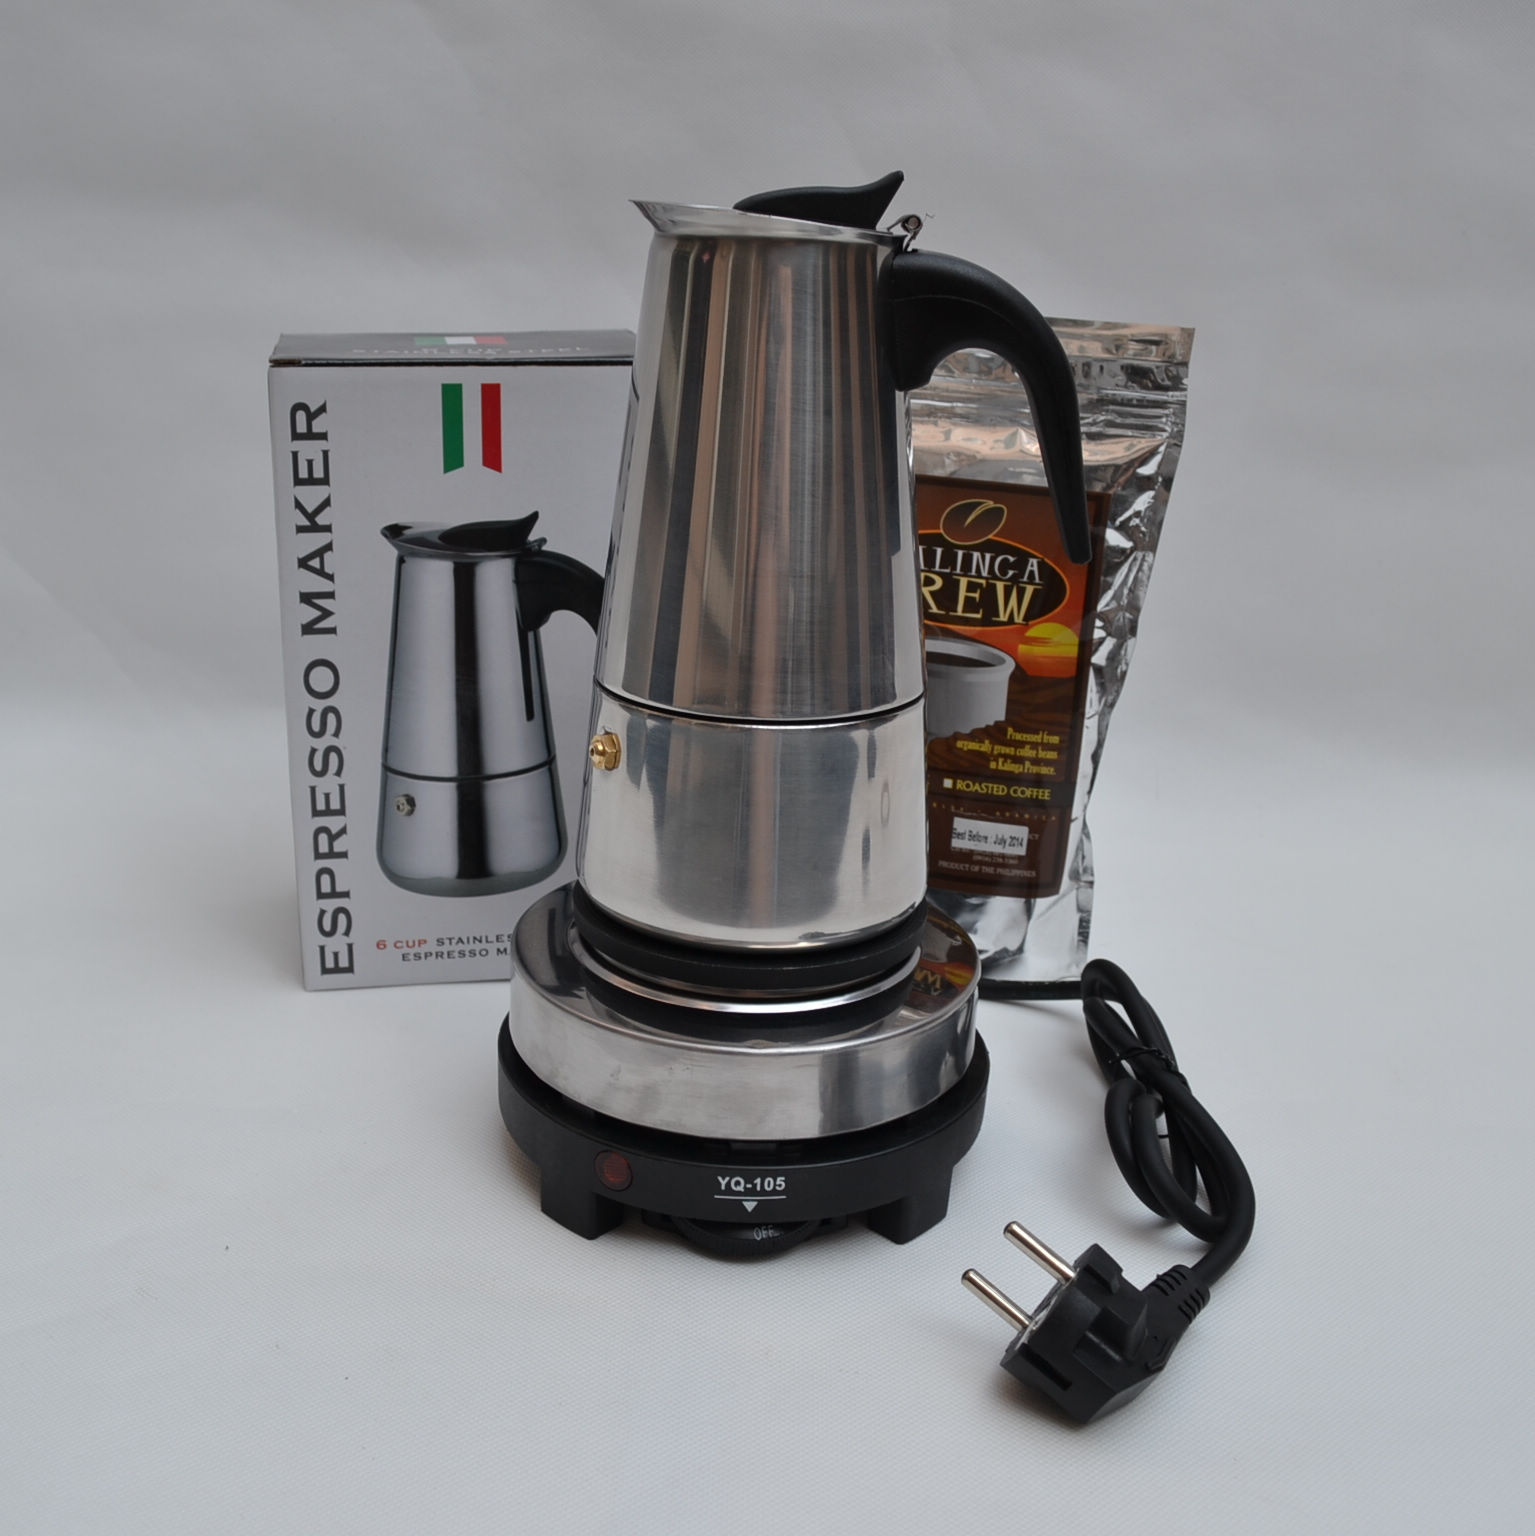 Coffee Maker Homekit : 6 cups300ML Espresso machine American trickling electric Moka coffee Maker pot furnace electric ...